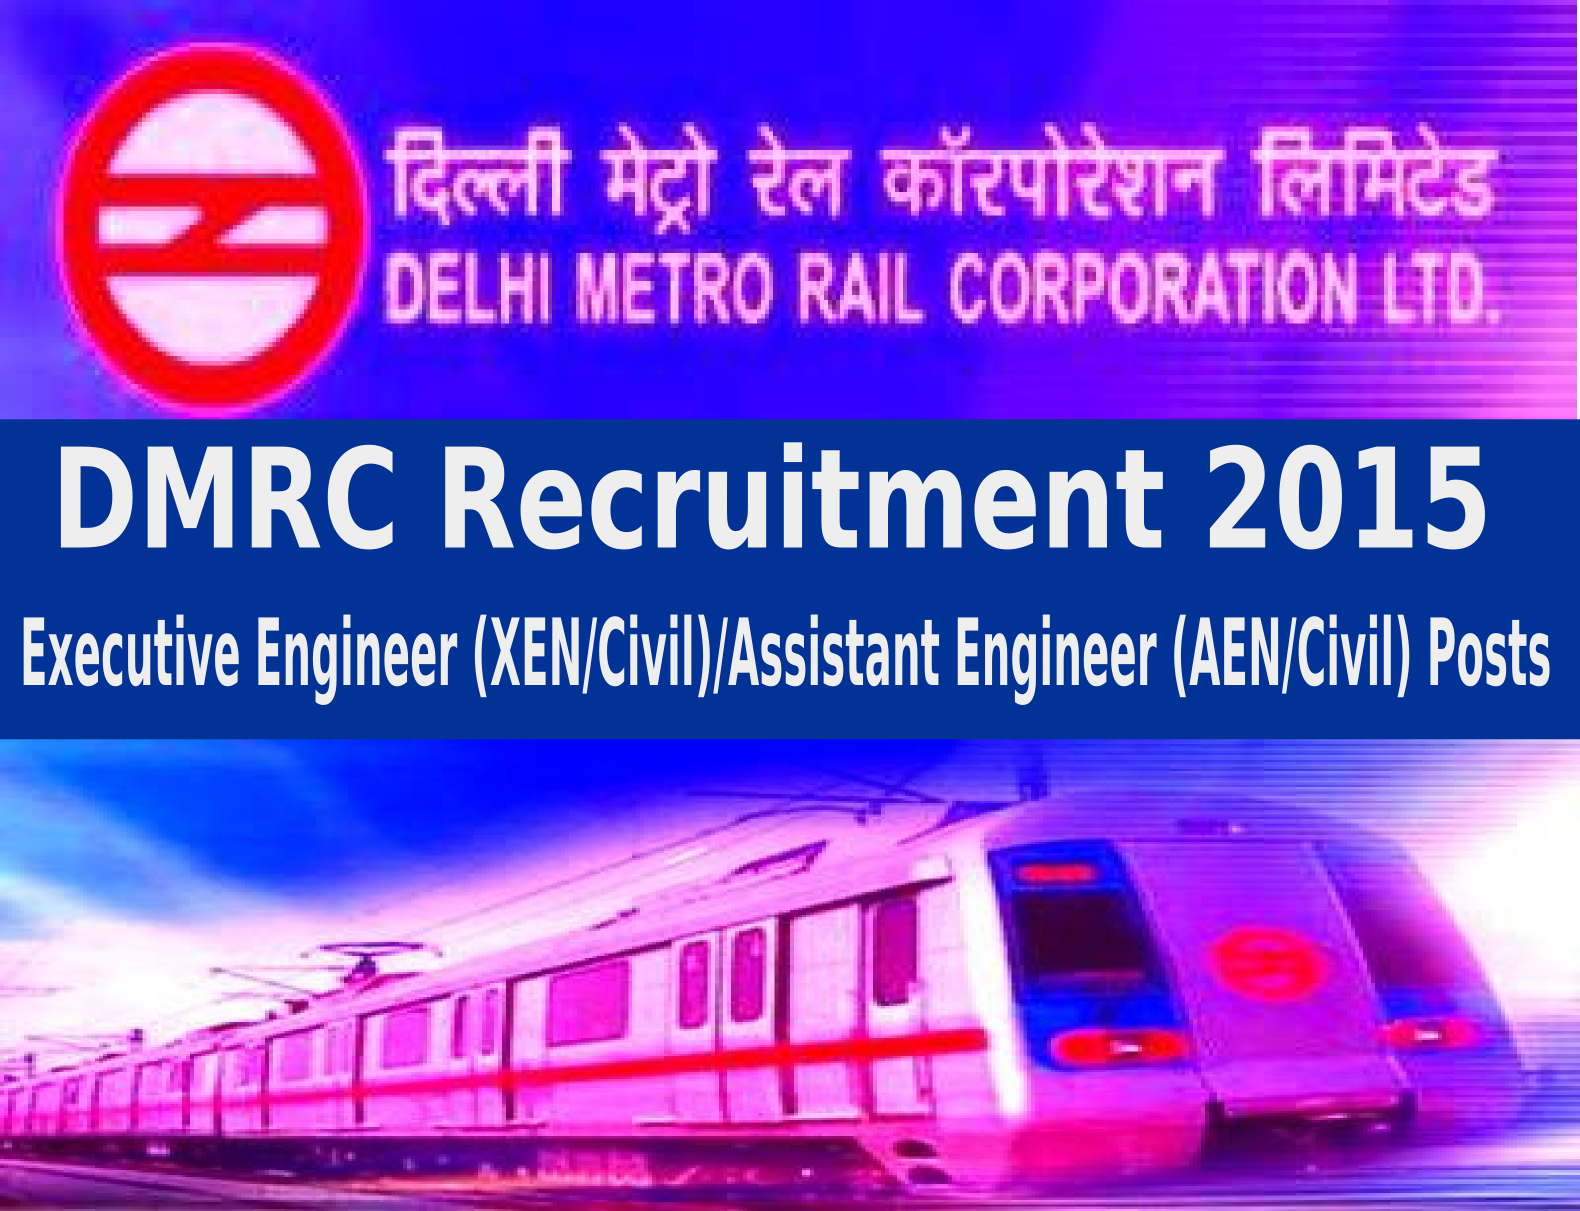 DMRC Recruitment 2015 For 24 Executive Engineer Posts